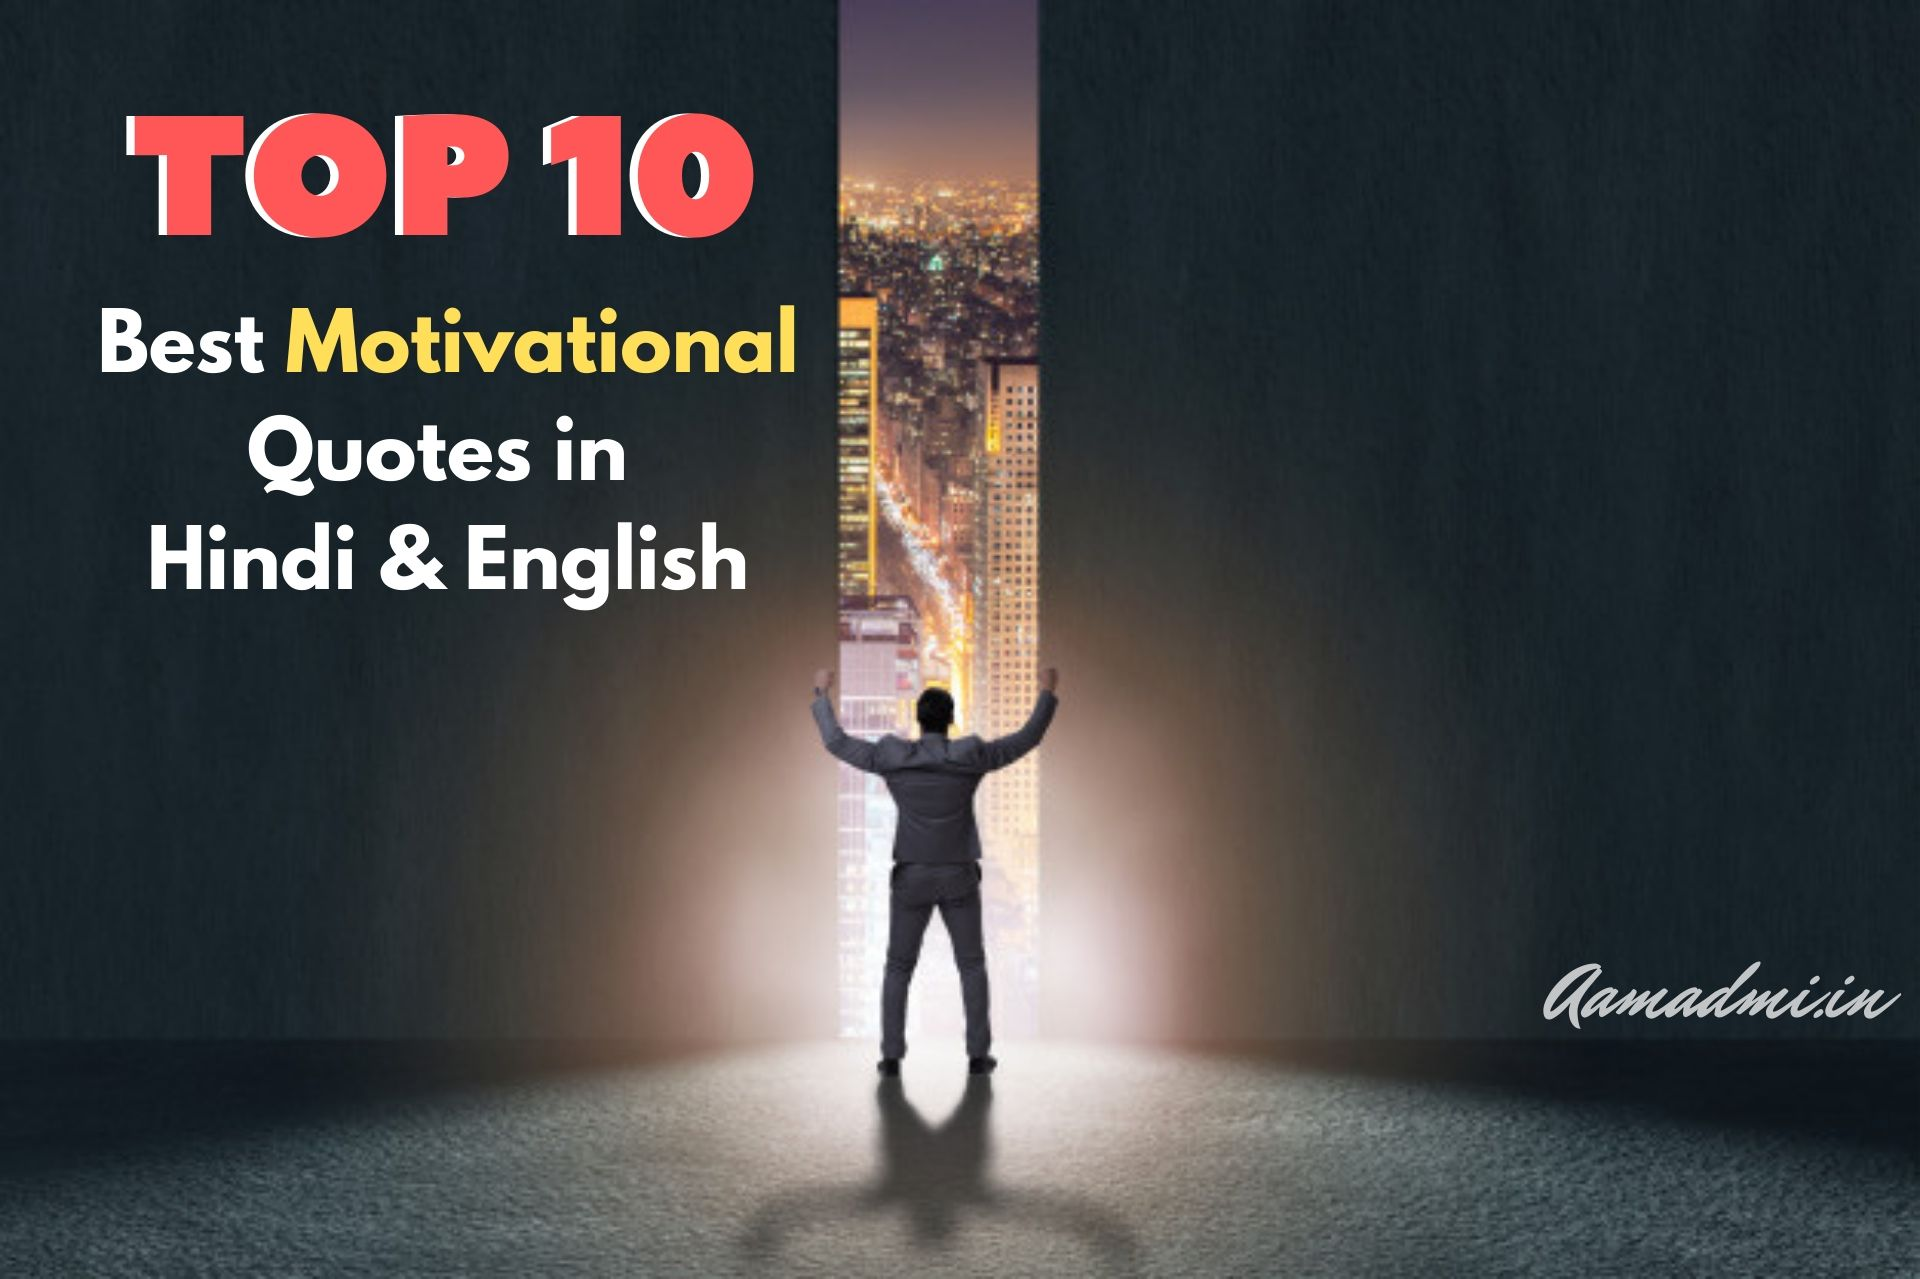 Top 10 Best Motivational Quotes In Hindi English